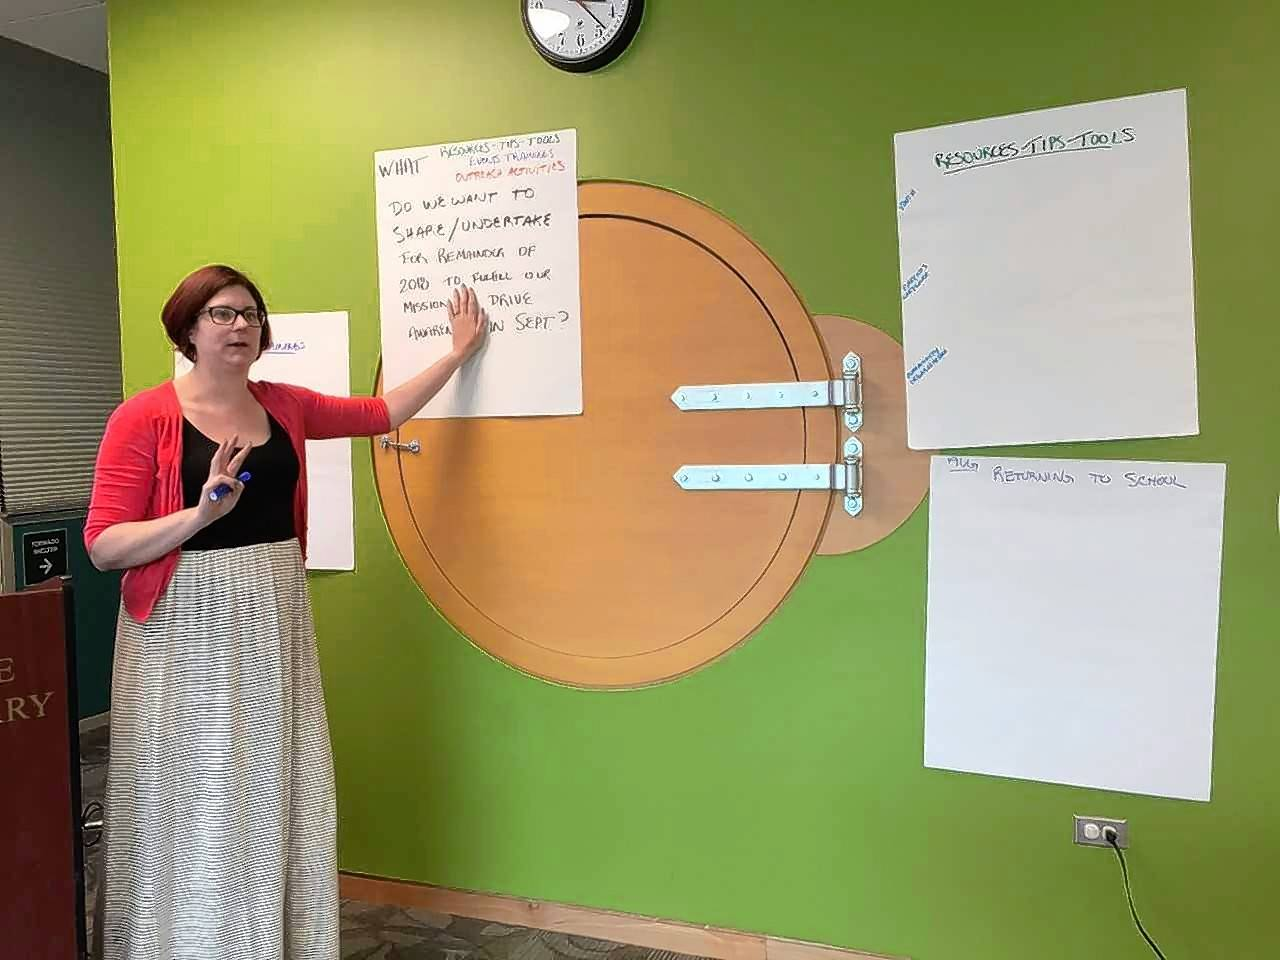 Lisle Township Supervisor Mary Jo Mullen leads a strategic planning session among members of the Youth in Crisis Coalition, which gathers mental health-focused professionals each month from Lisle, Downers Grove and Naperville townships.